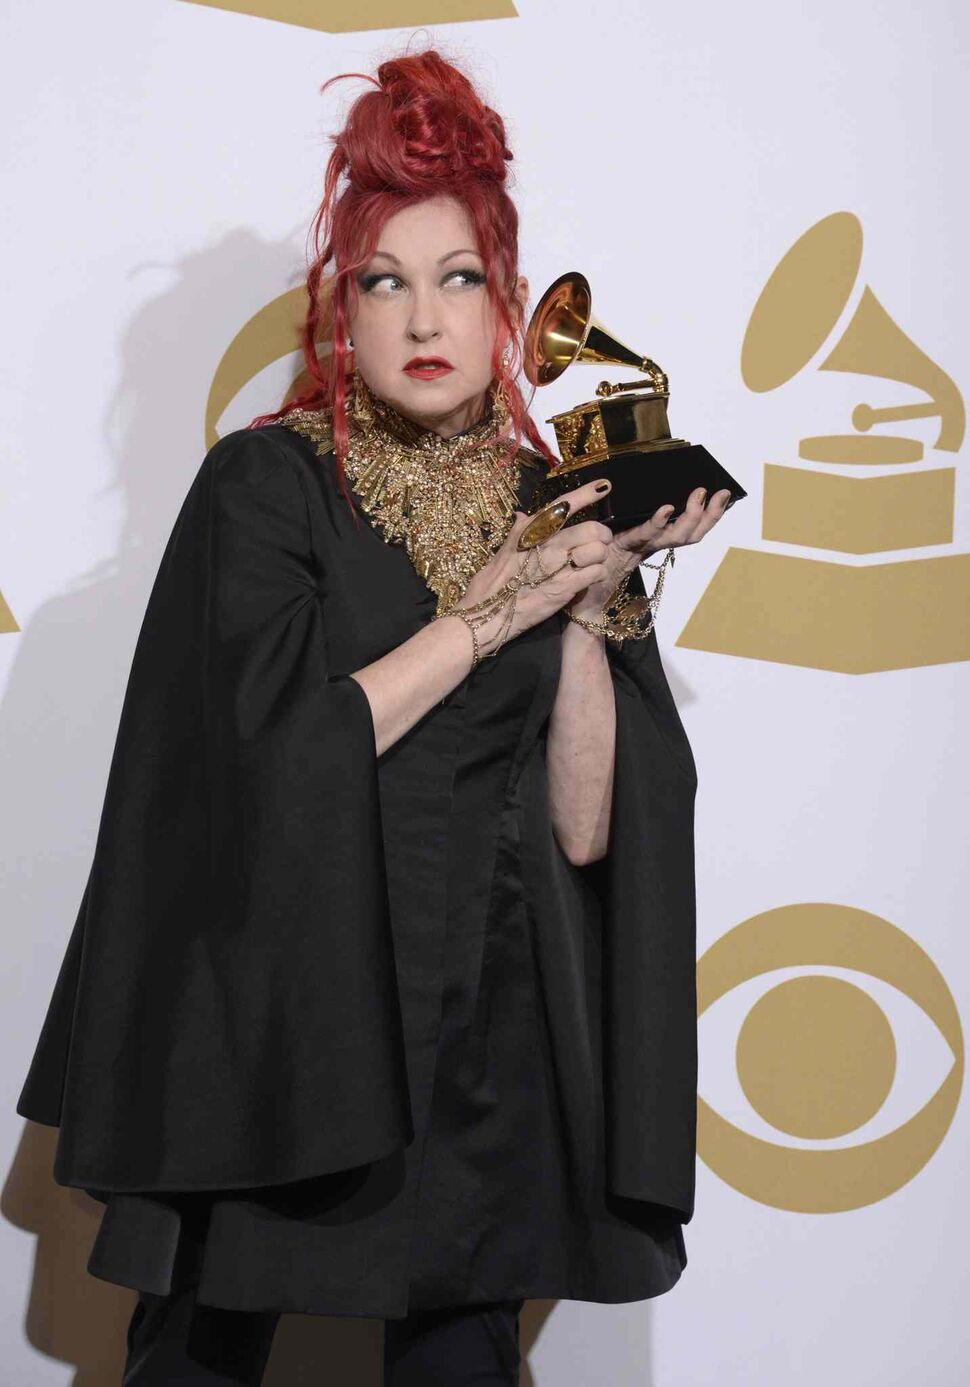 Cyndi Lauper poses the award for best musical theater album for Kinky Boots at the 56th annual Grammy Awards. (Dan Steinberg / The Associated Press)